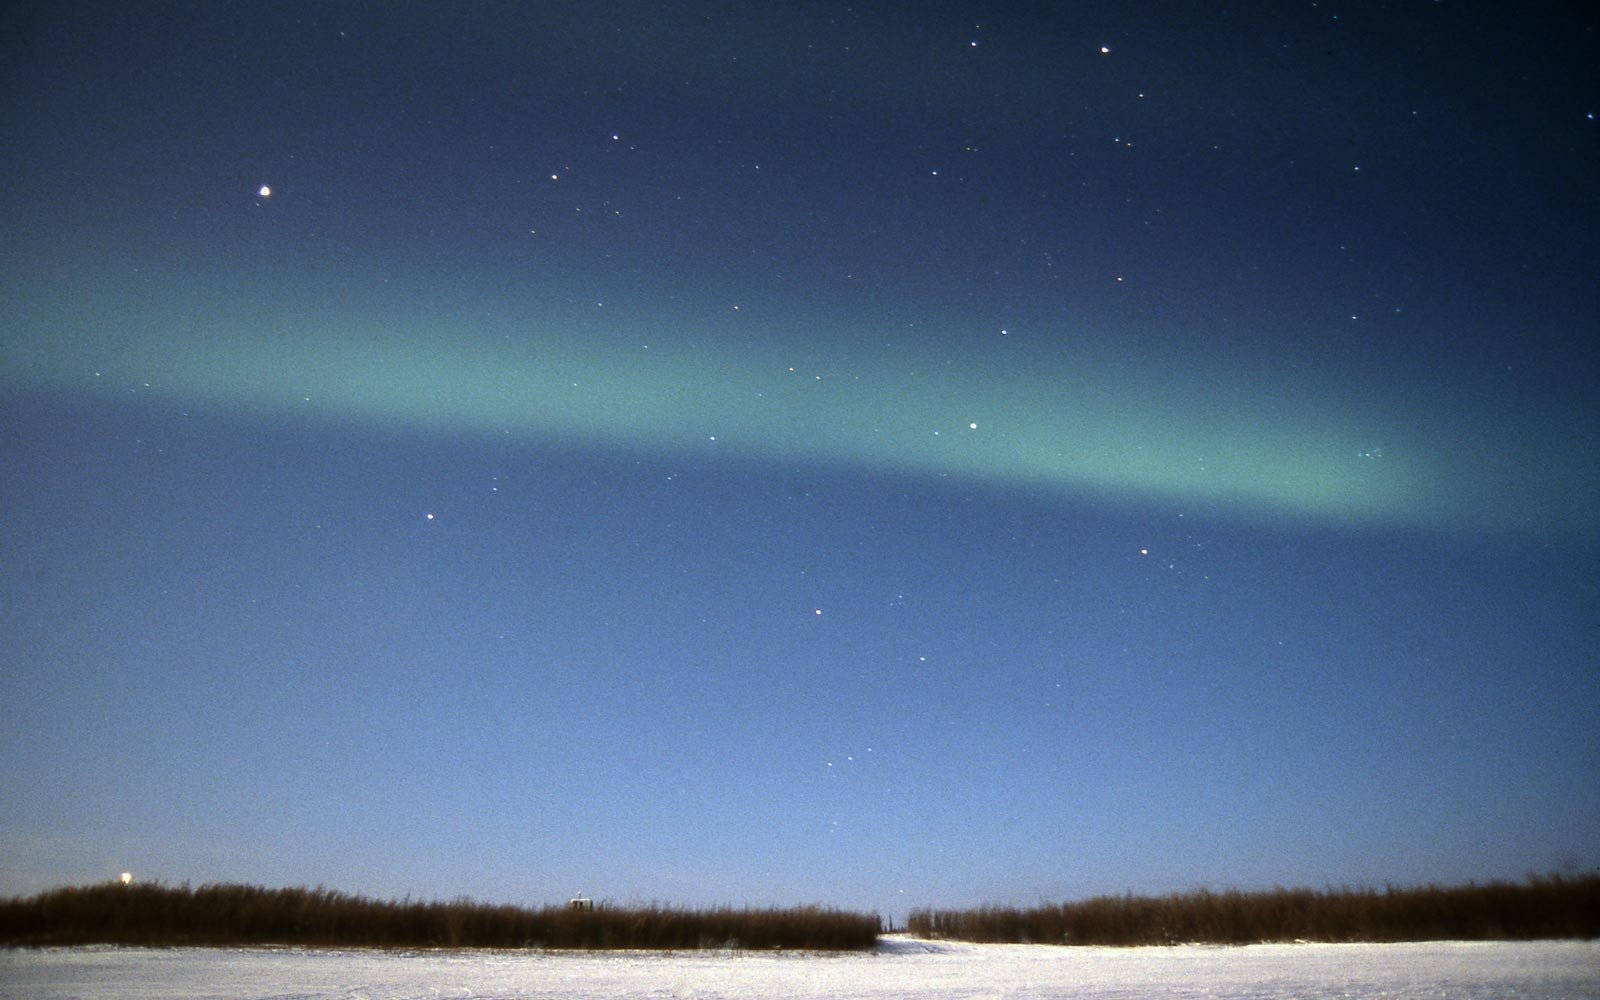 Aurora borealis seen from Inuvik, in Canada's northern territory